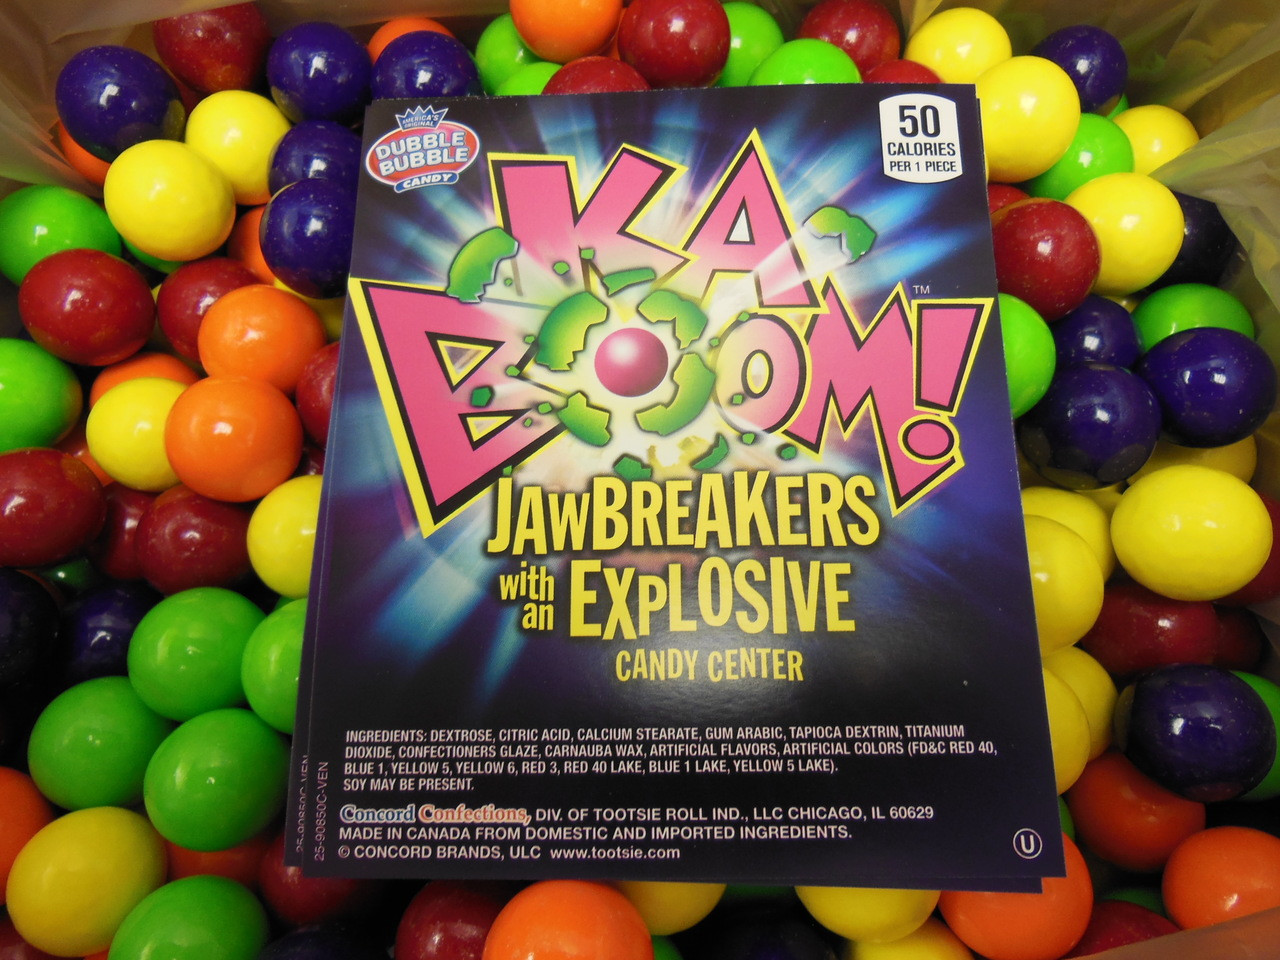 ad16a8c8c3c Kaboom Jawbreakers Explosive Candy Center Concord 1 LB (453g)